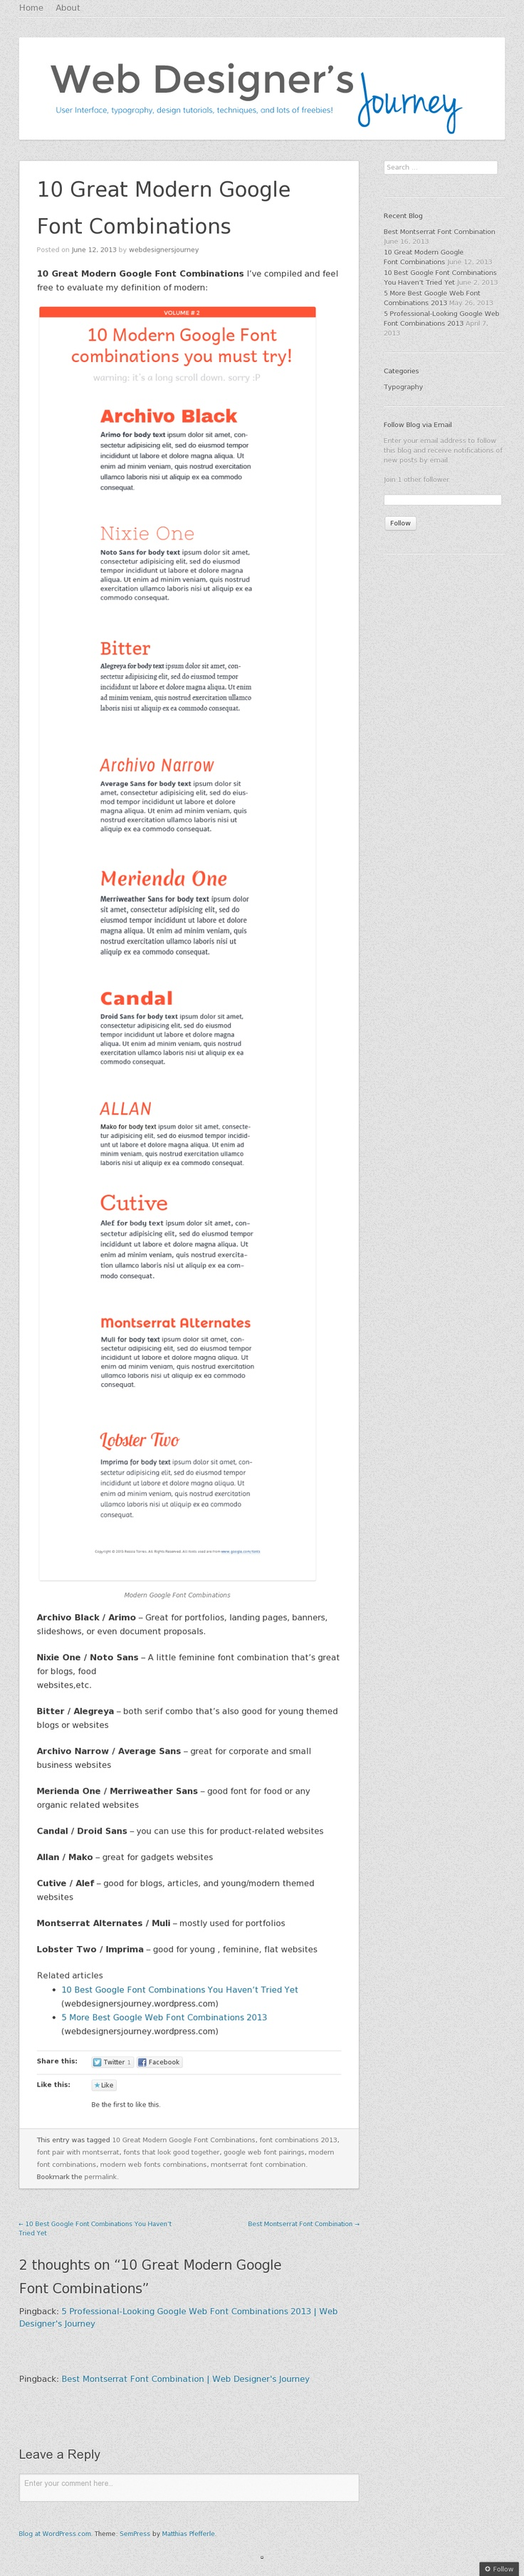 Website 'http://webdesignersjourney.wordpress.com/2013/06/12/10-great-modern-google-font-combinations/' snapped on Snapito!